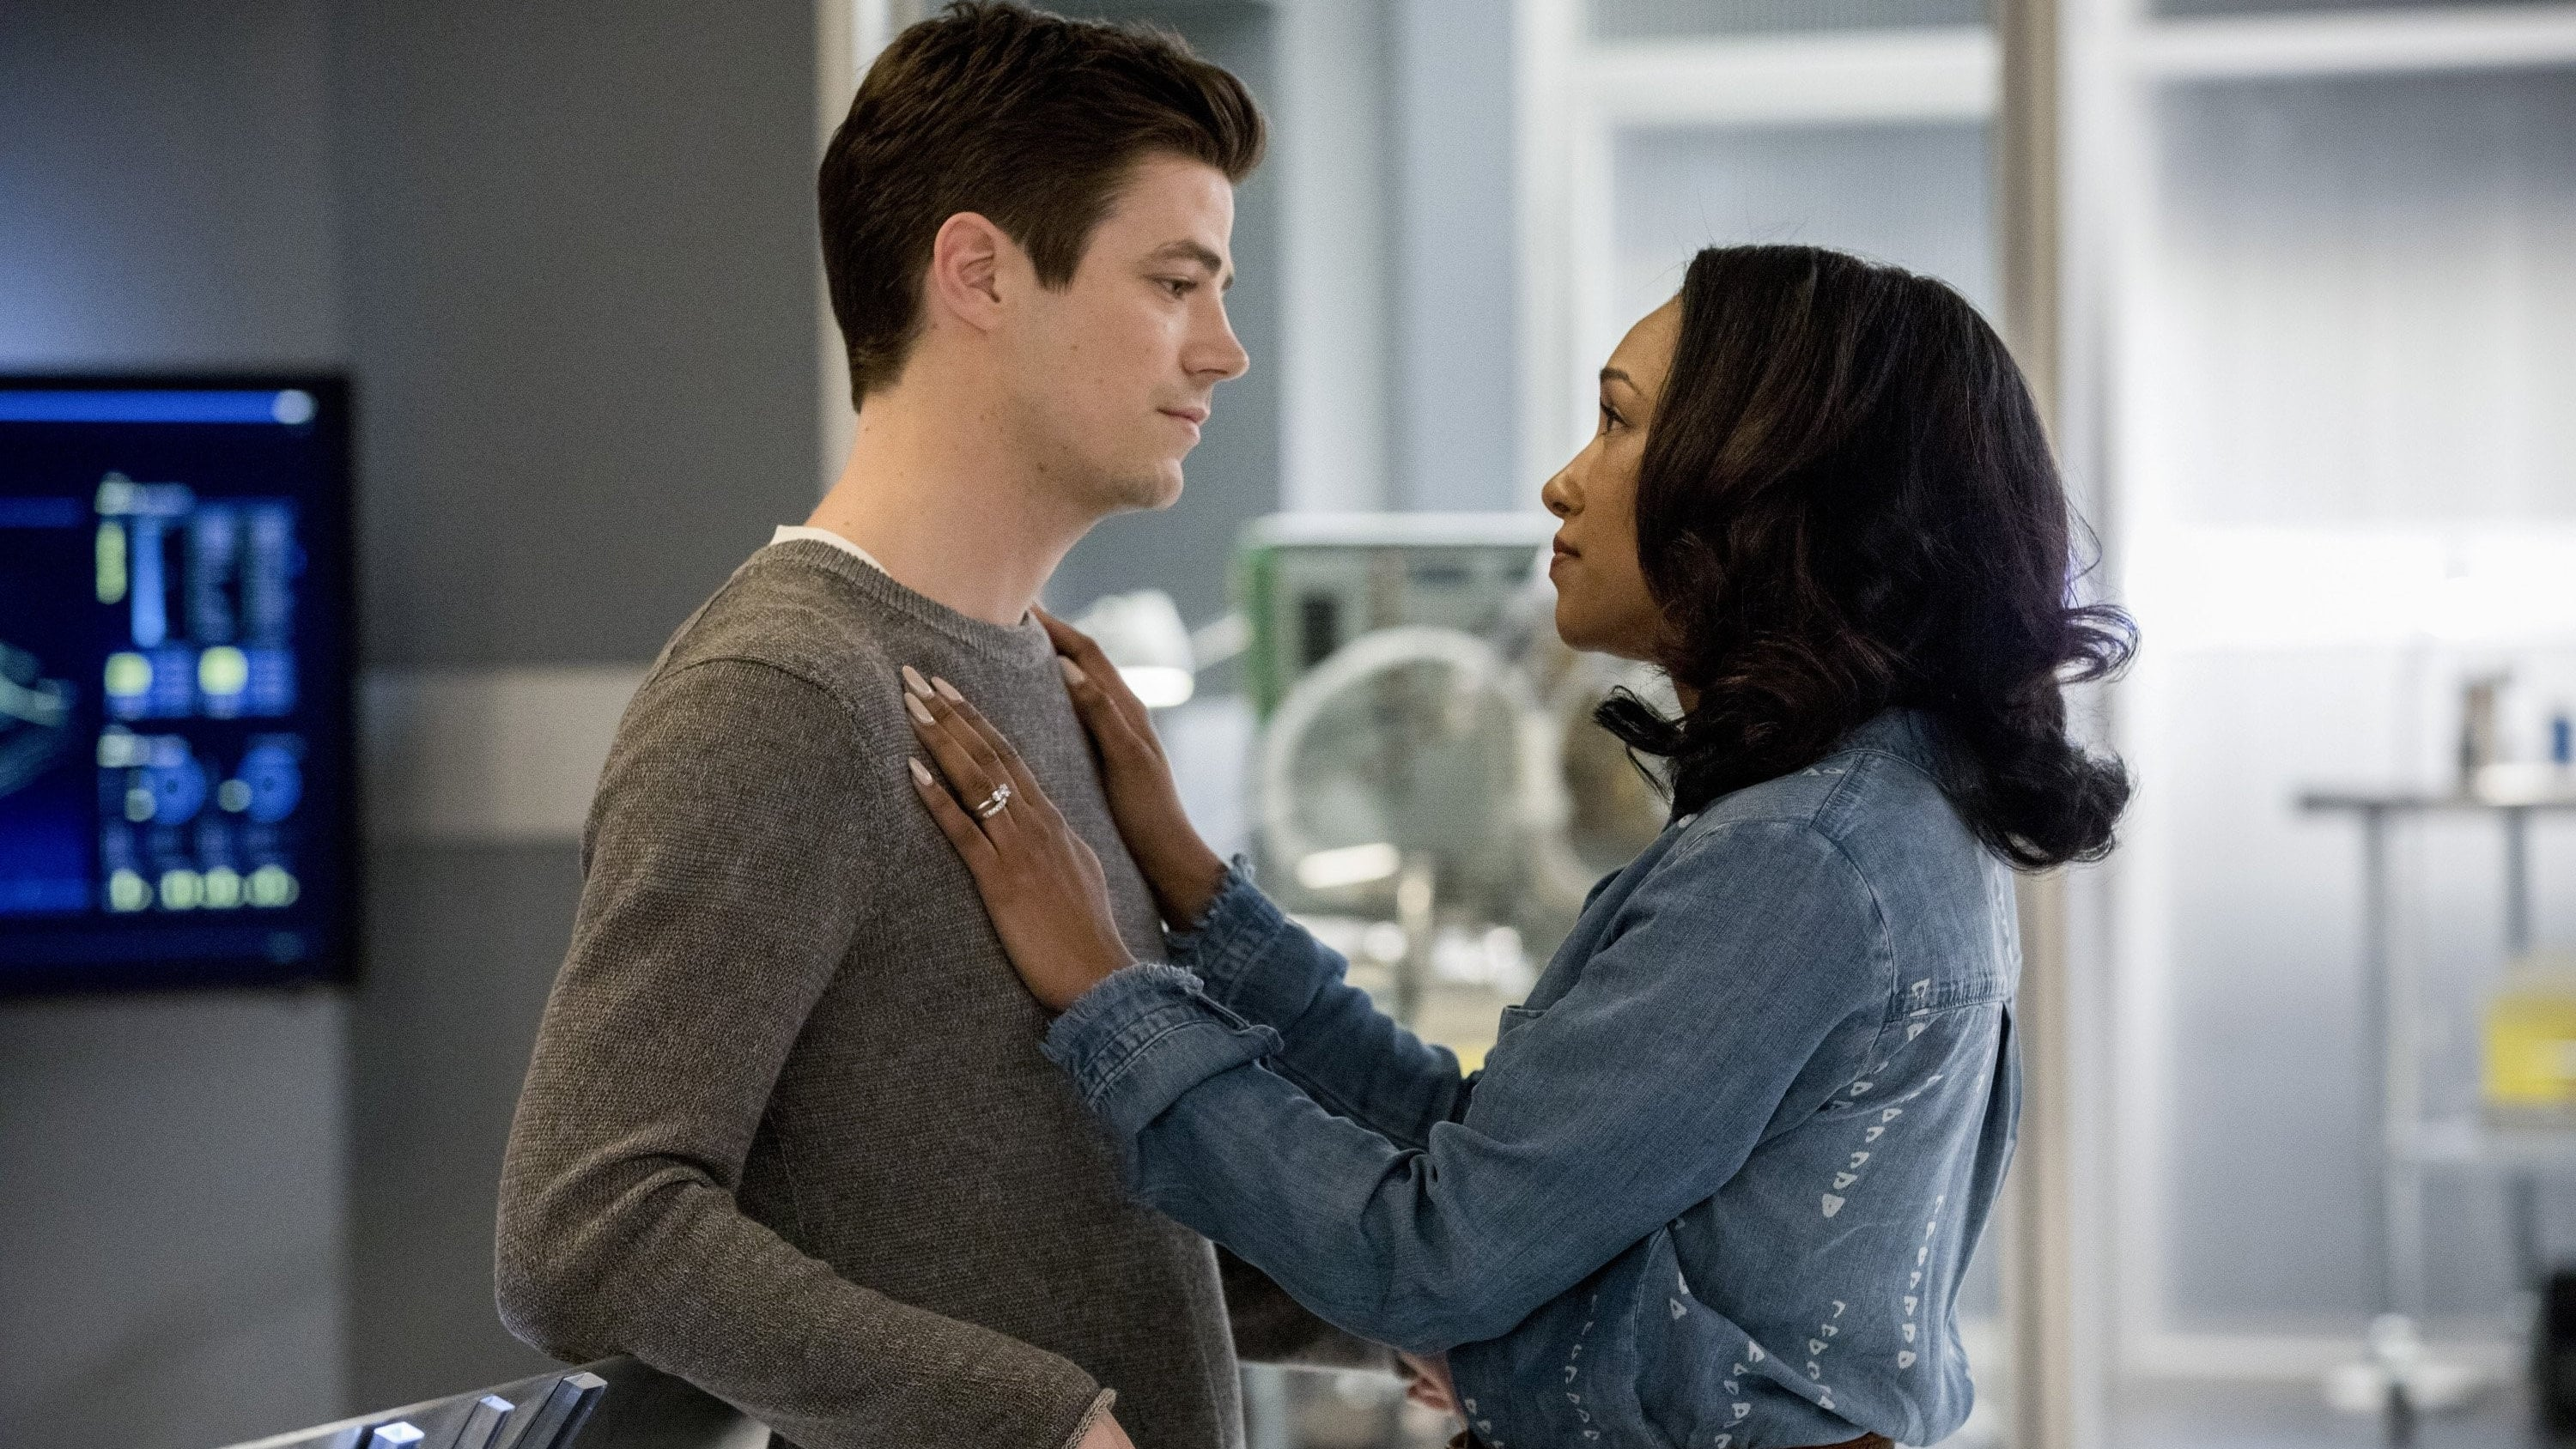 Watch The Flash: 4x20 Episode Online For Free - Movie4u